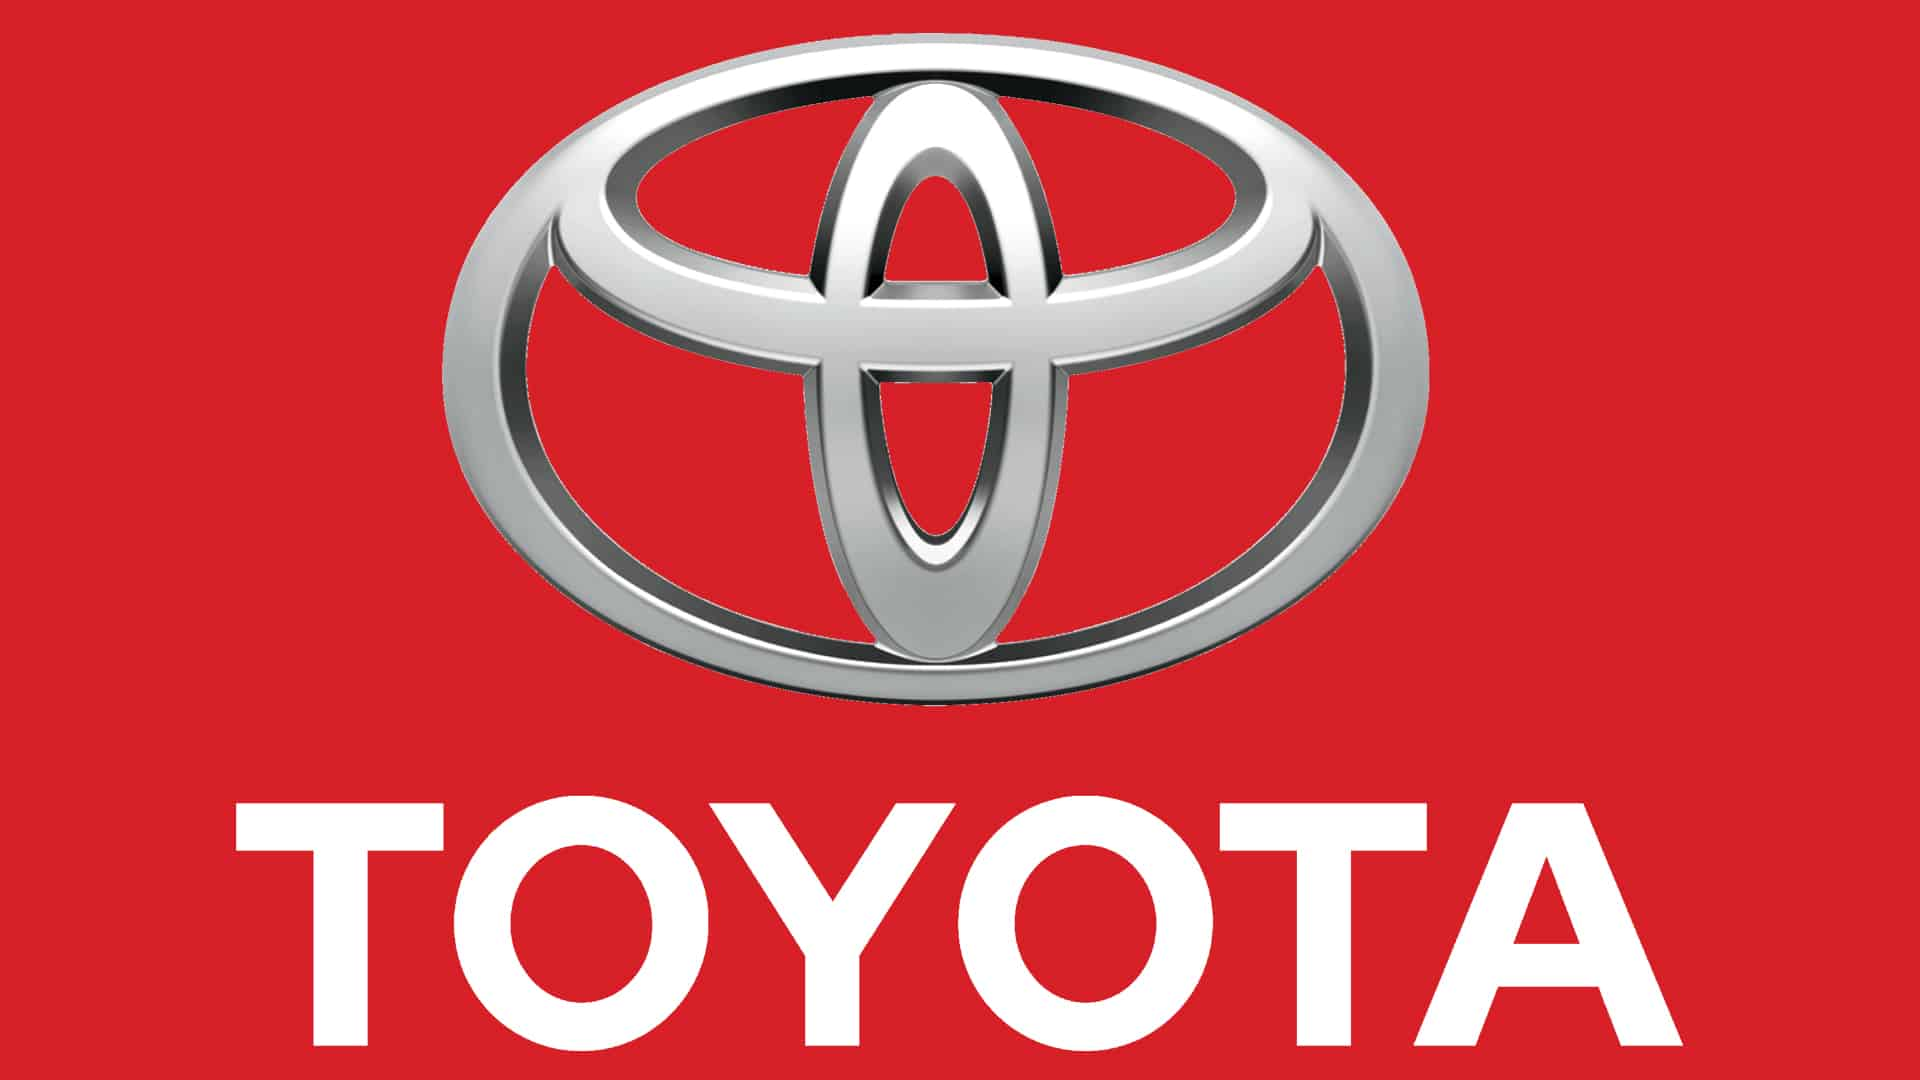 Chinese Outfit Singulato Buys Electric Vehicle Tech from Toyota